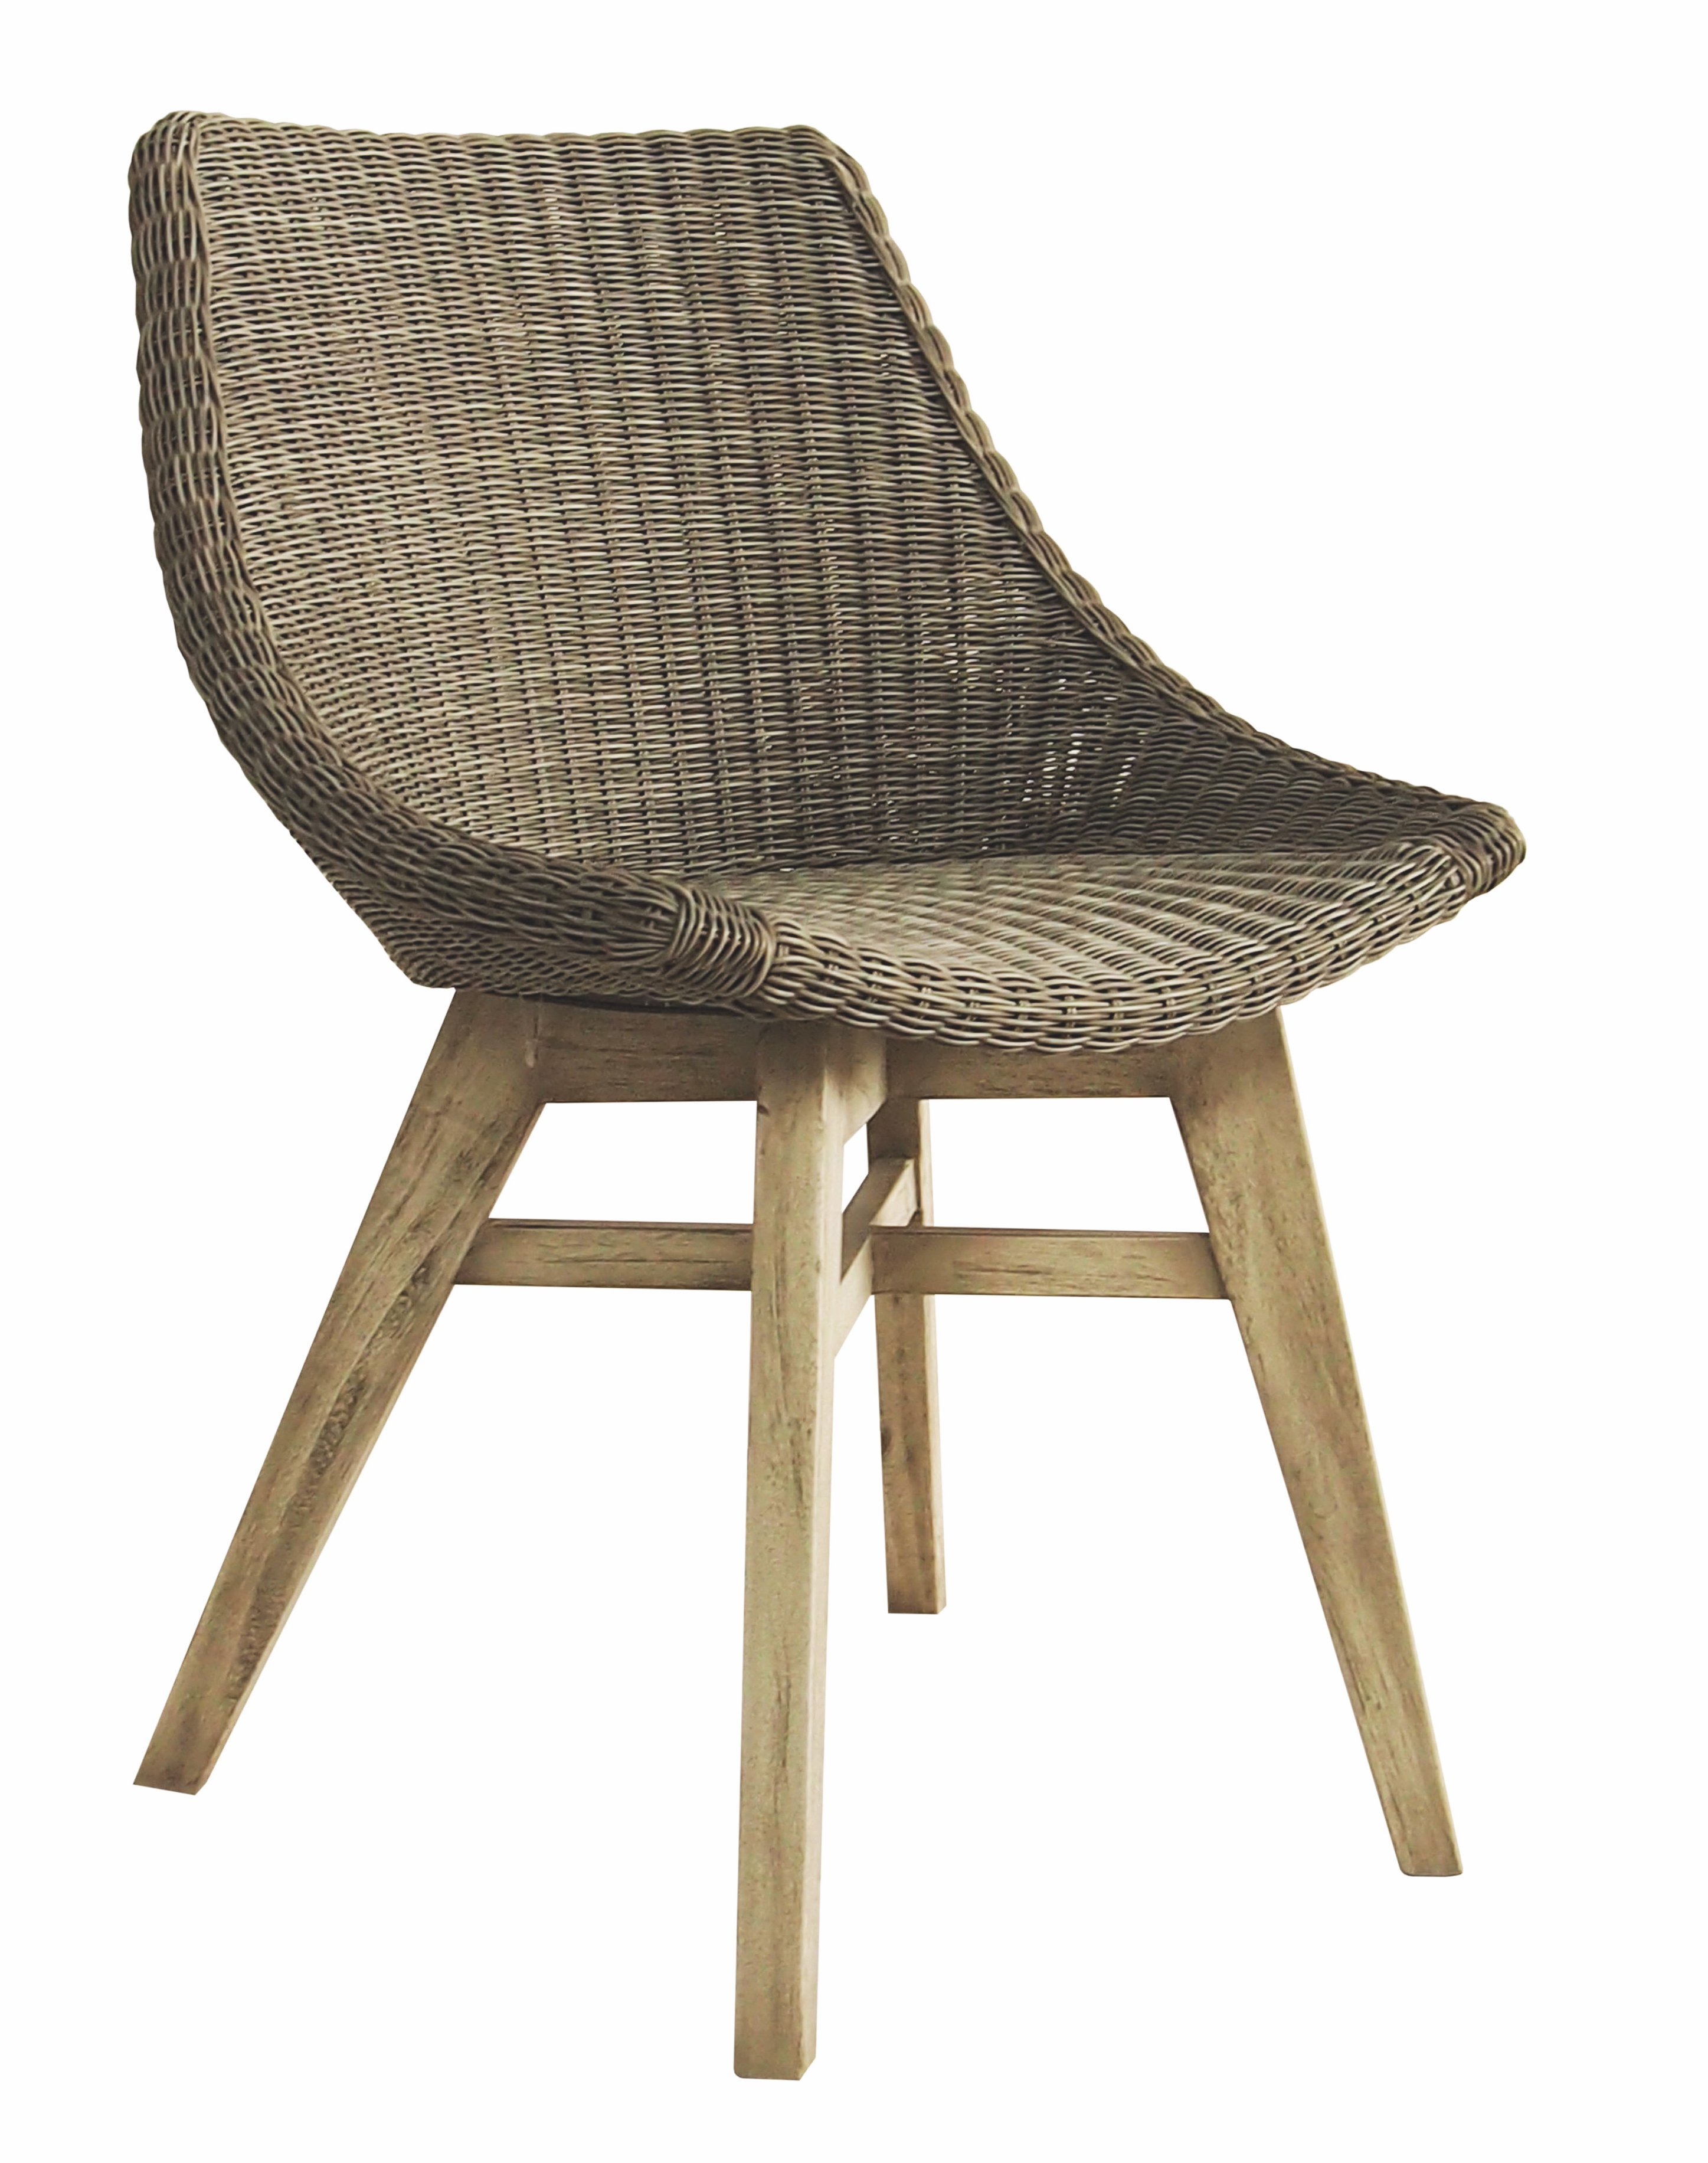 Fantastic Modern Wicker Teak Dining Chairs Contract Hotels Restaurant Andrewgaddart Wooden Chair Designs For Living Room Andrewgaddartcom